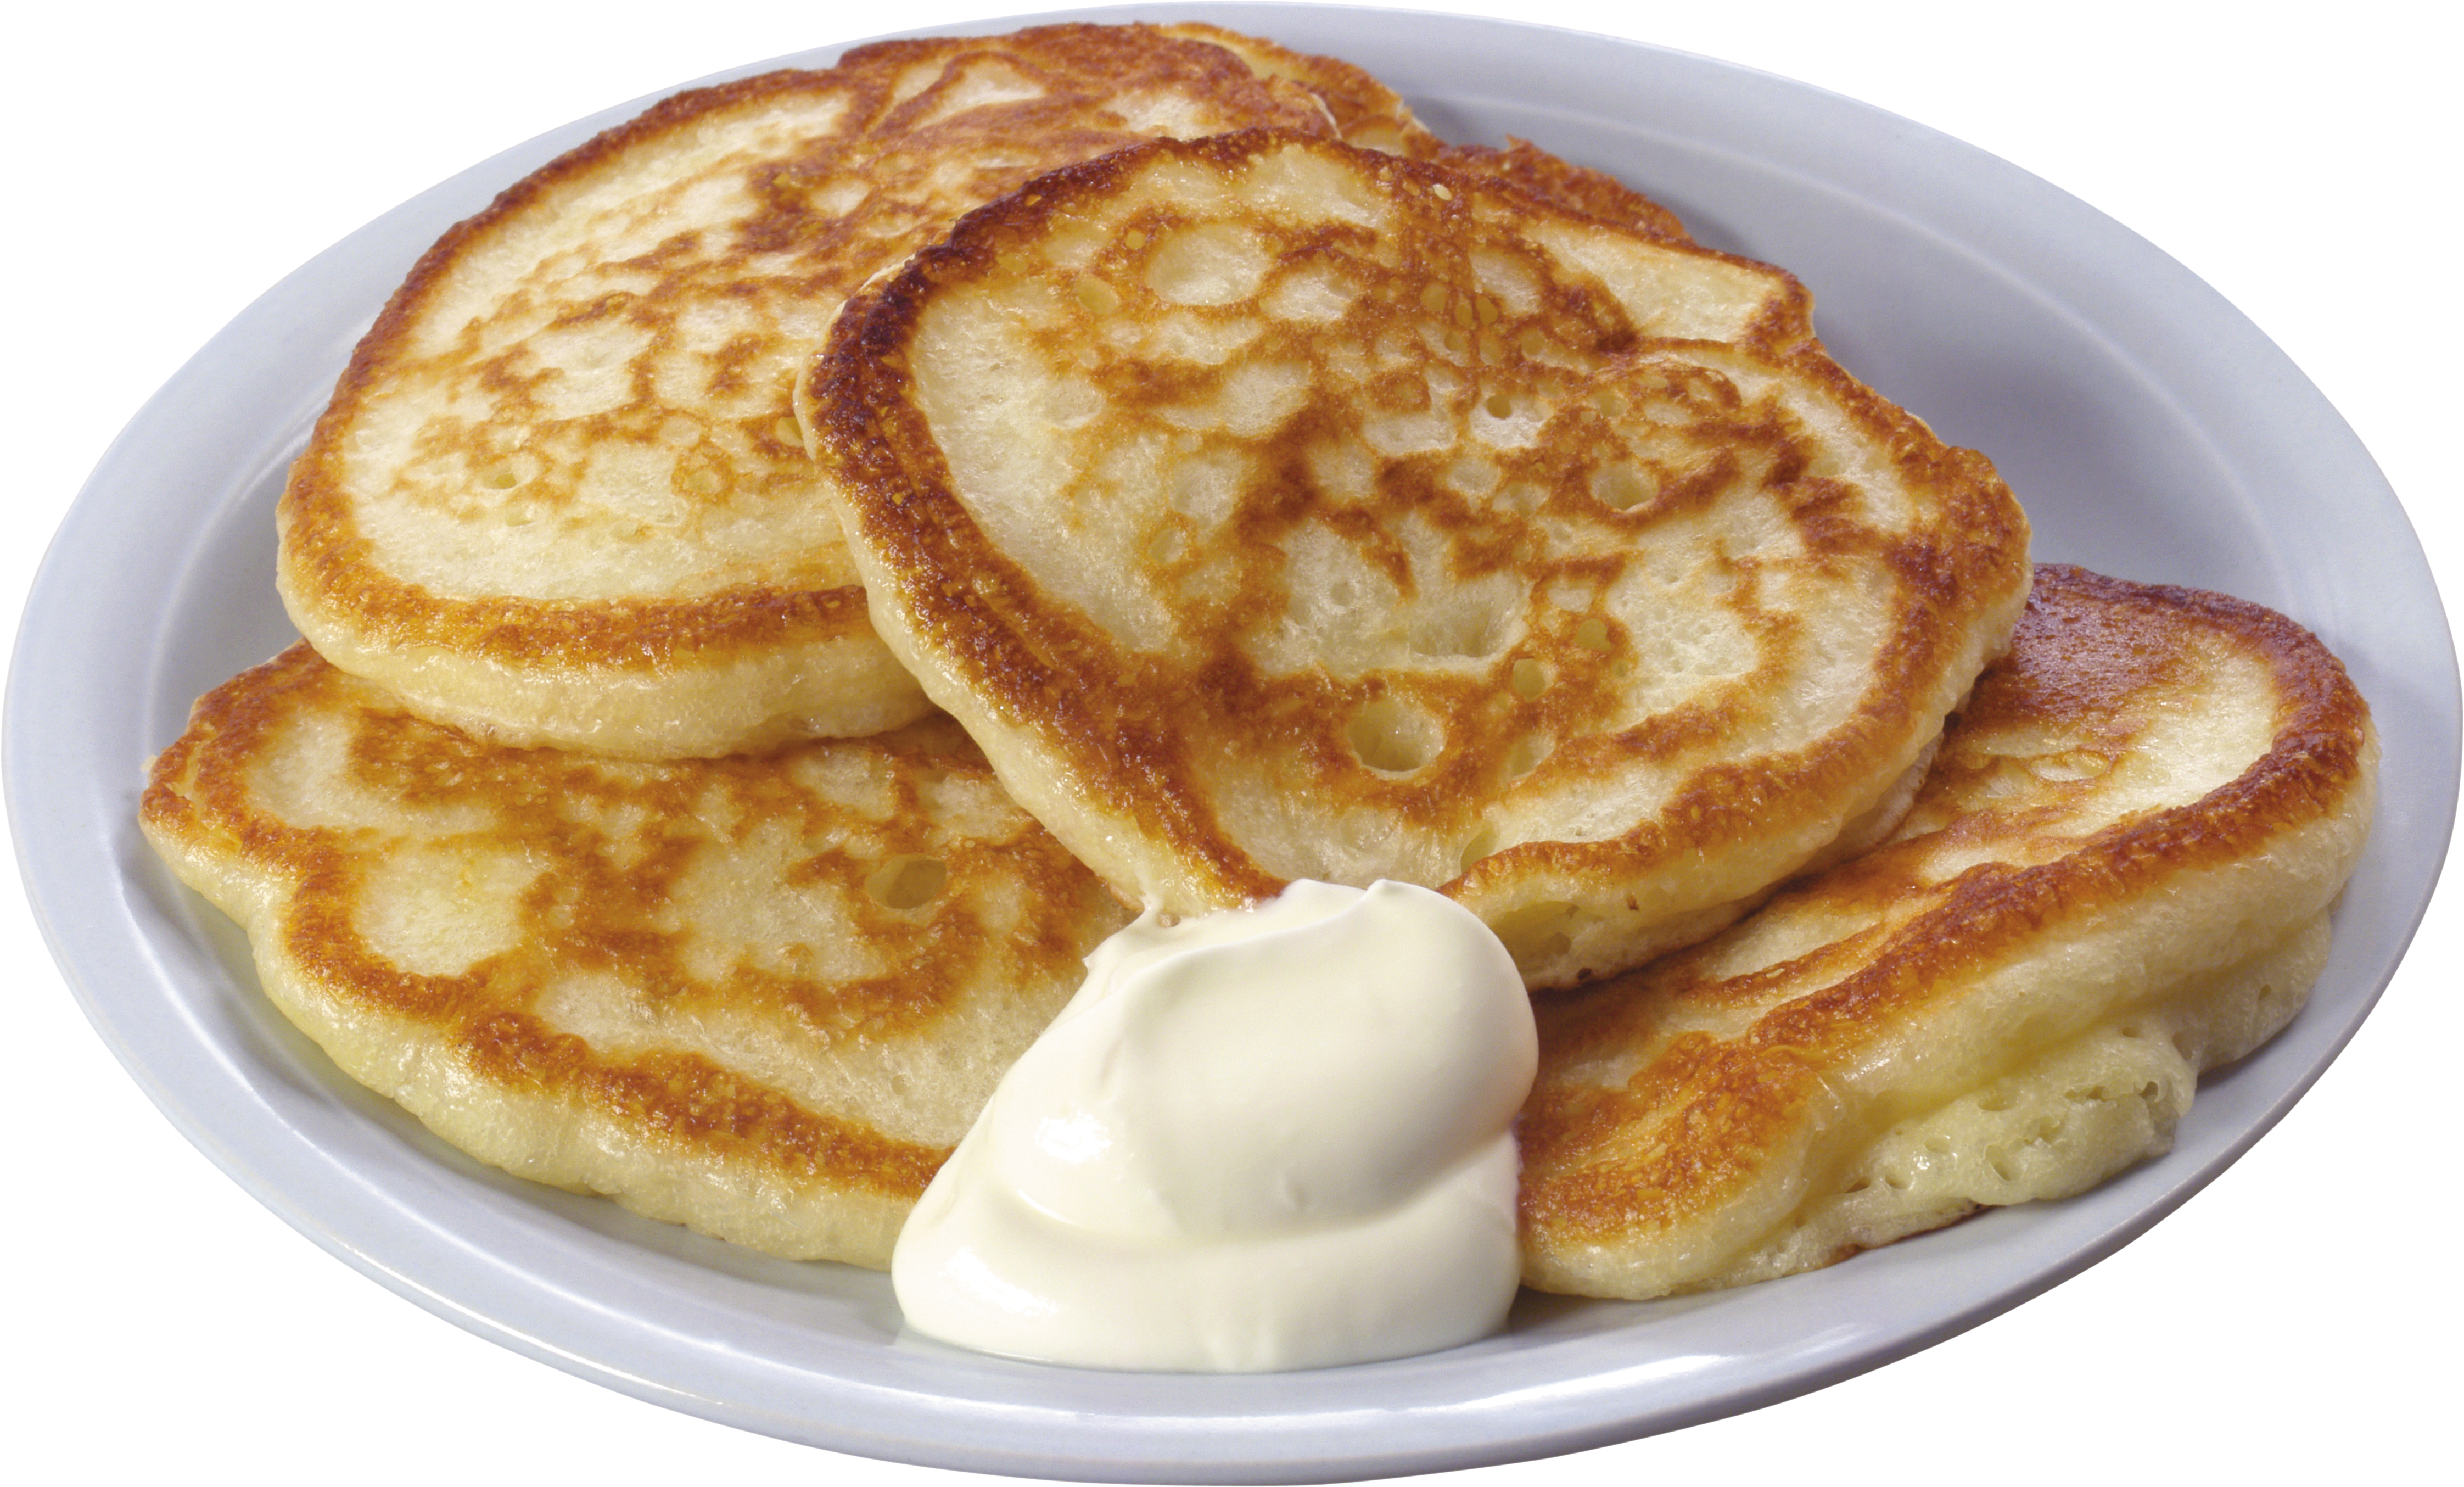 Pancakes in Plate